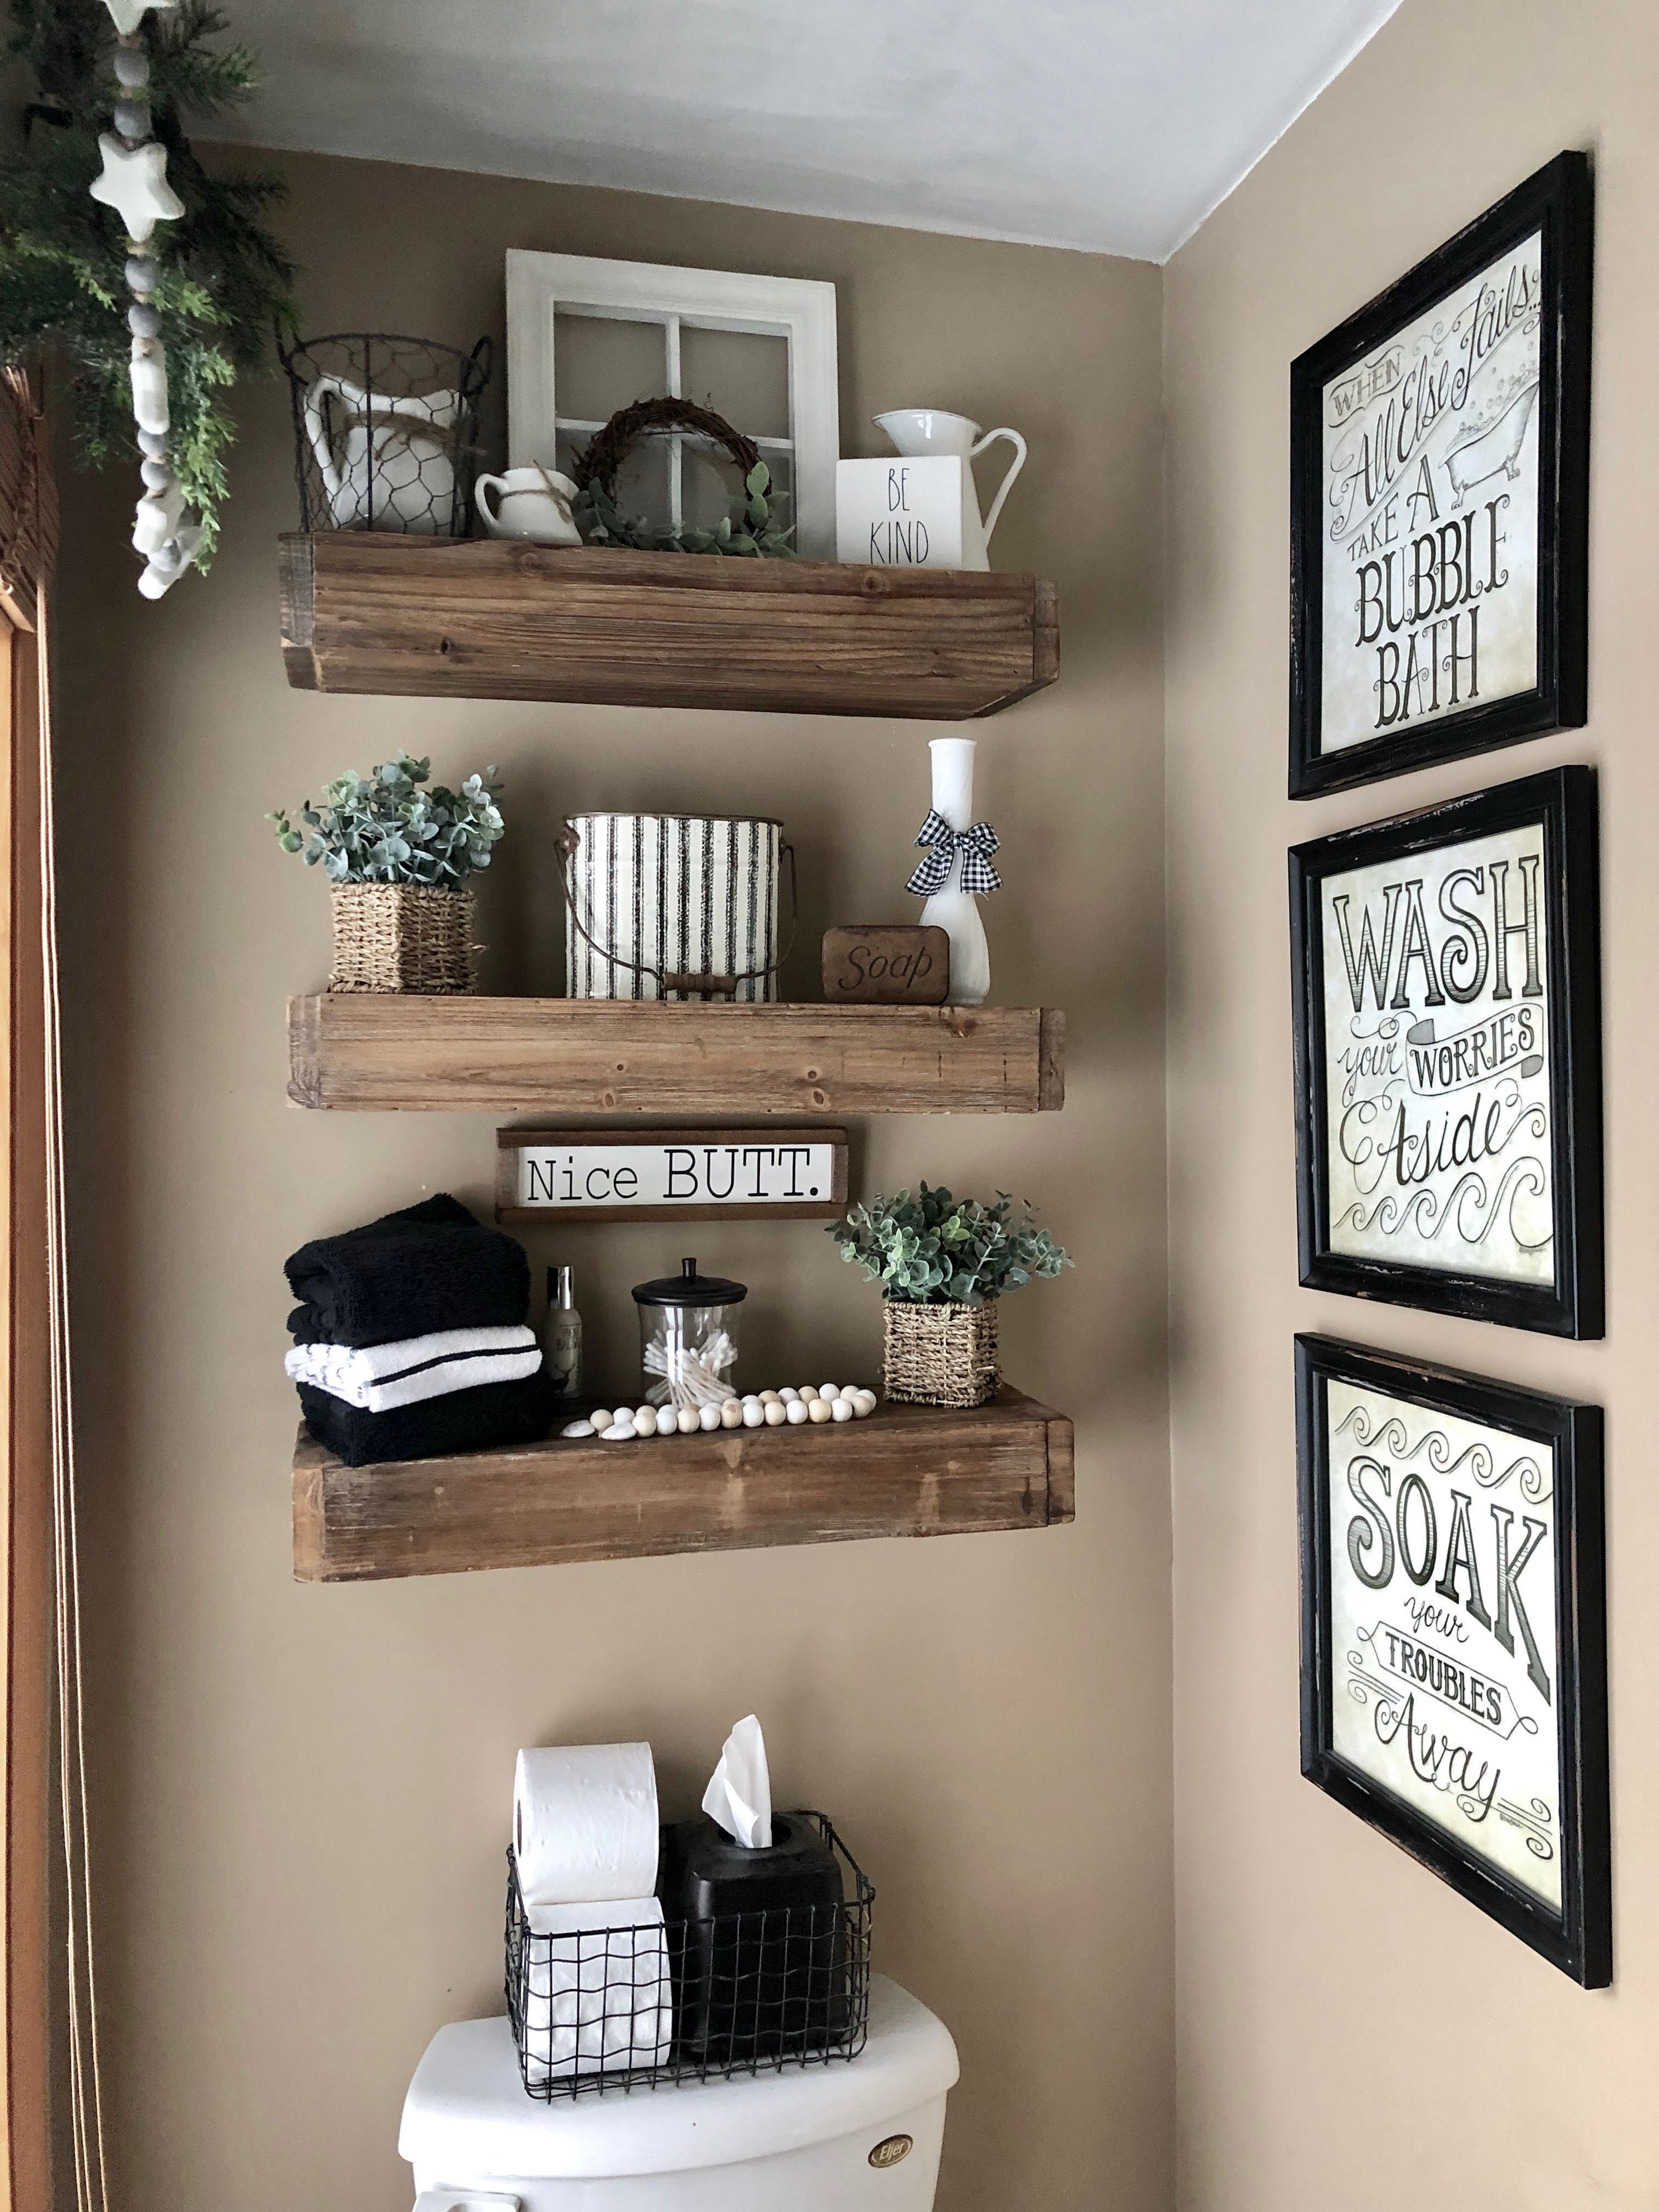 25 Amazing DIY Floating Shelves For Bathroom to Easy Organize Everything #bathroomrenoideas